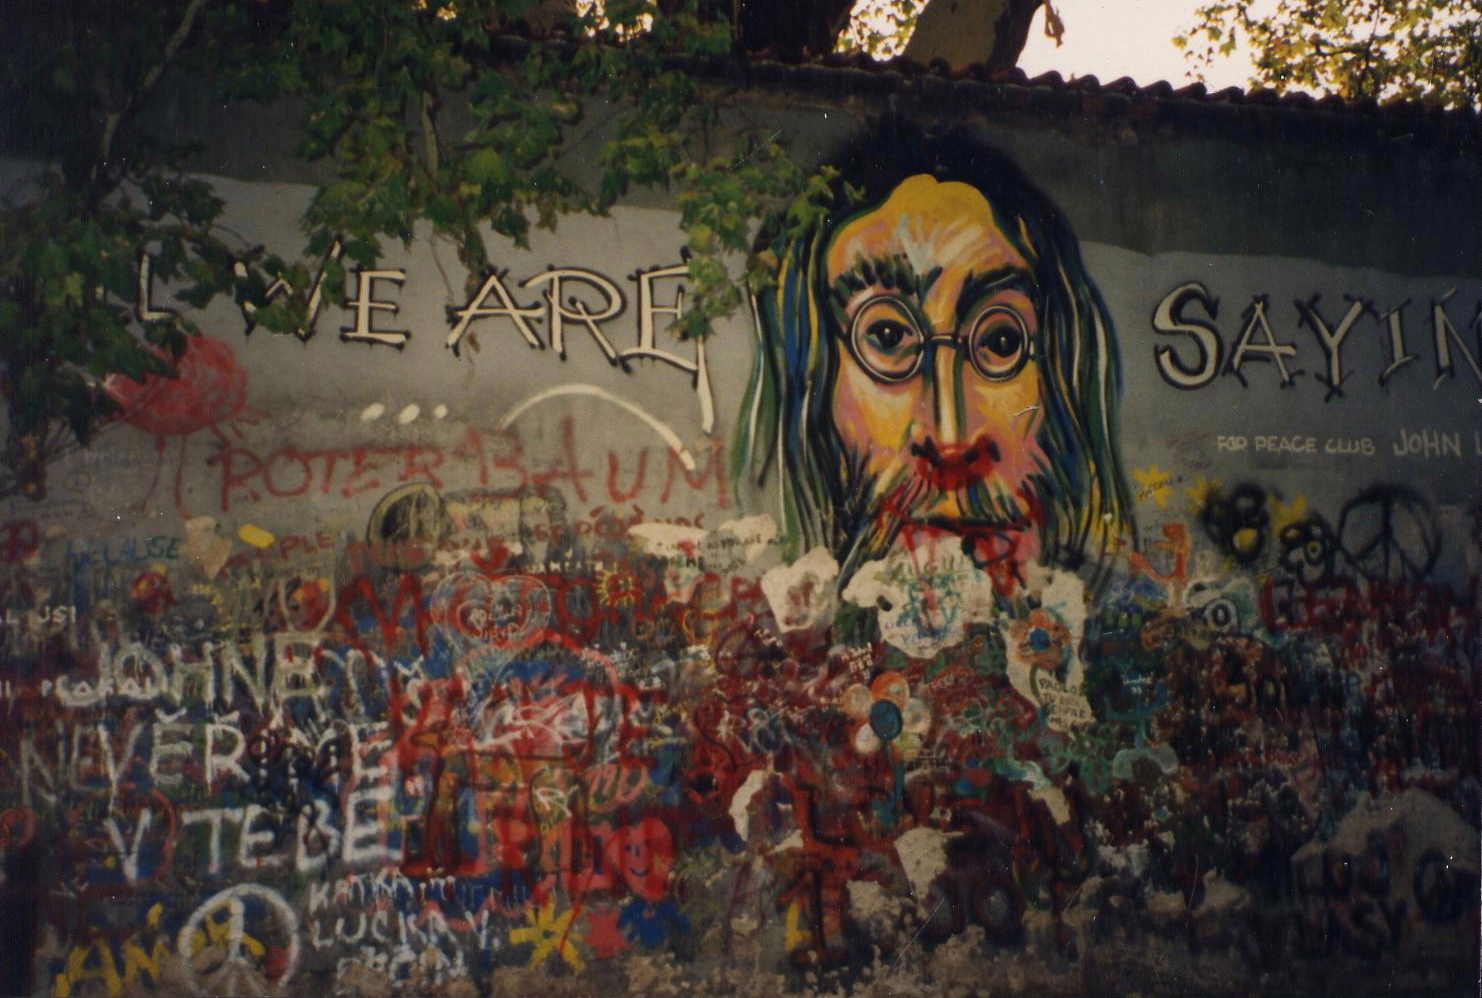 Original portrait of John Lennon over the wall in 1993